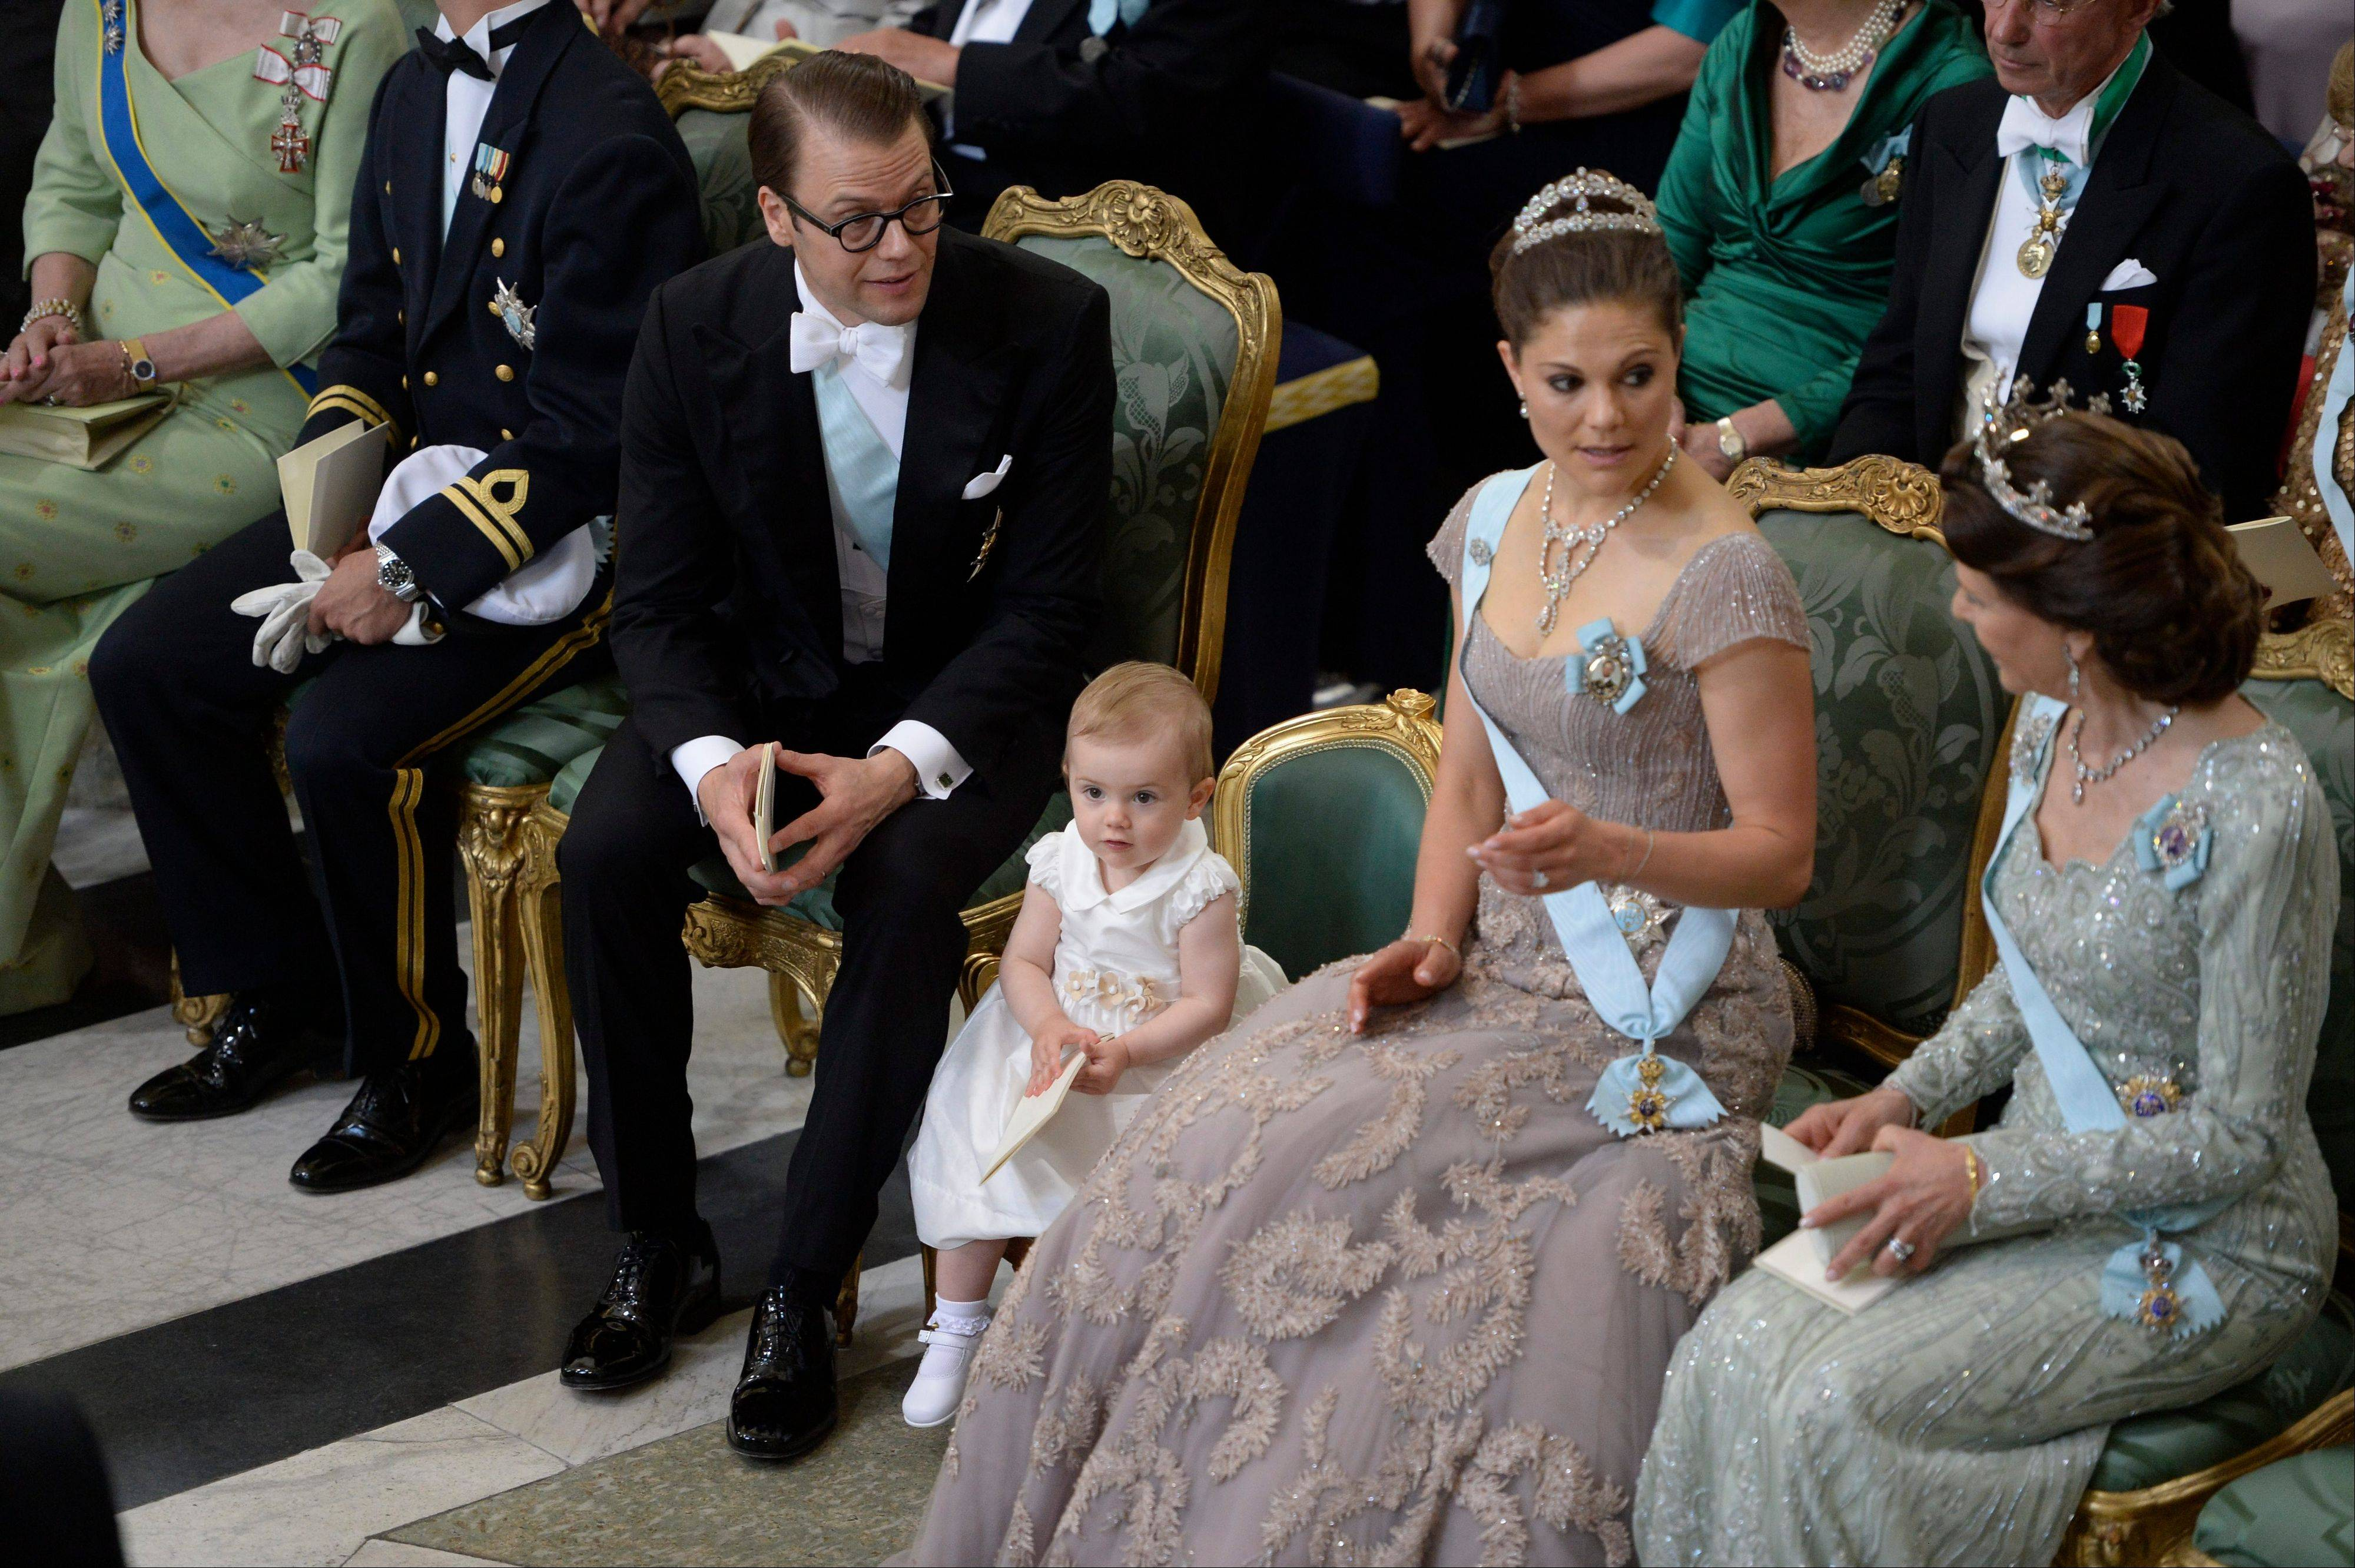 Prince Daniel, Princess Estelle, third right, Crown Princess Victoria, second right, and Queen Silvia of Sweden attend the wedding ceremony of Princess Madeleine and Christopher O'Neill at the Royal Chapel in Stockholm, Saturday June 8.